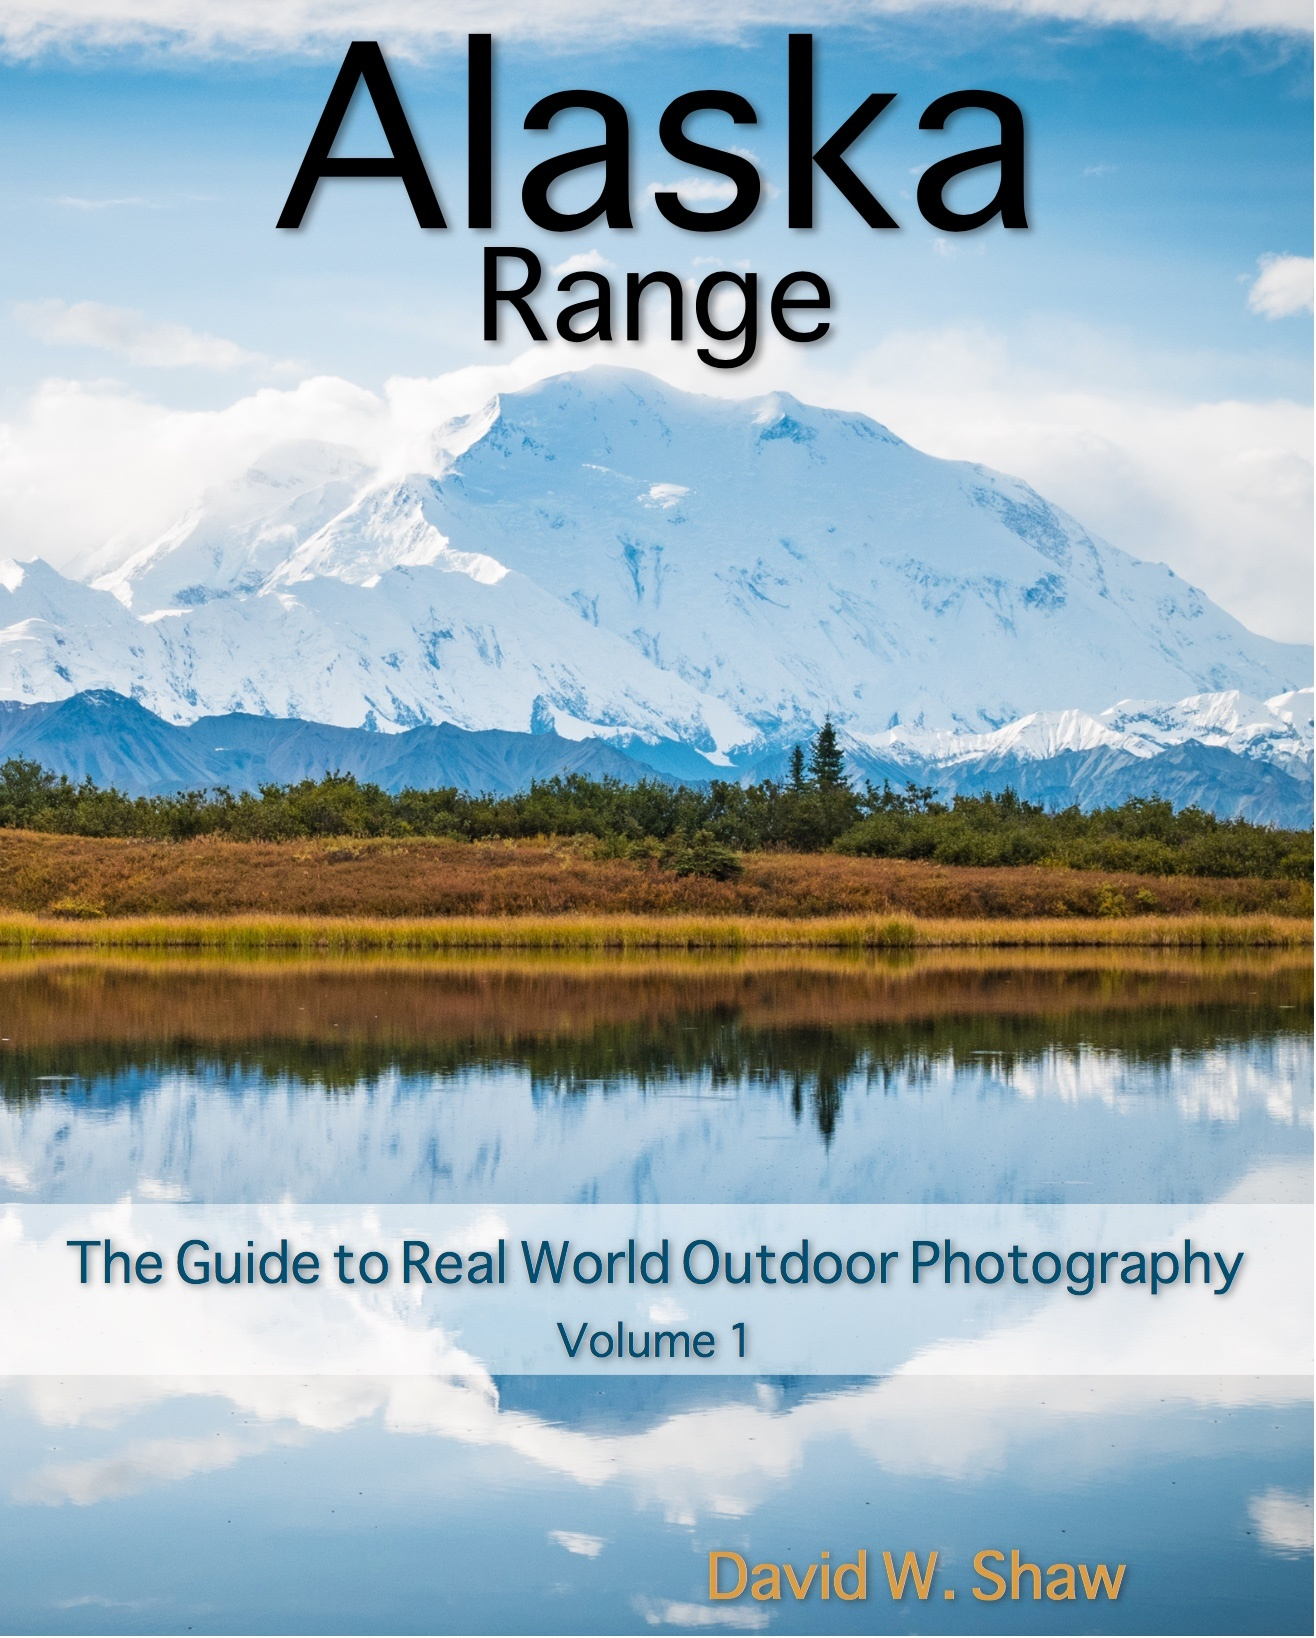 Alaska Range: The Real World Guide to Outdoor Photography Volume 1